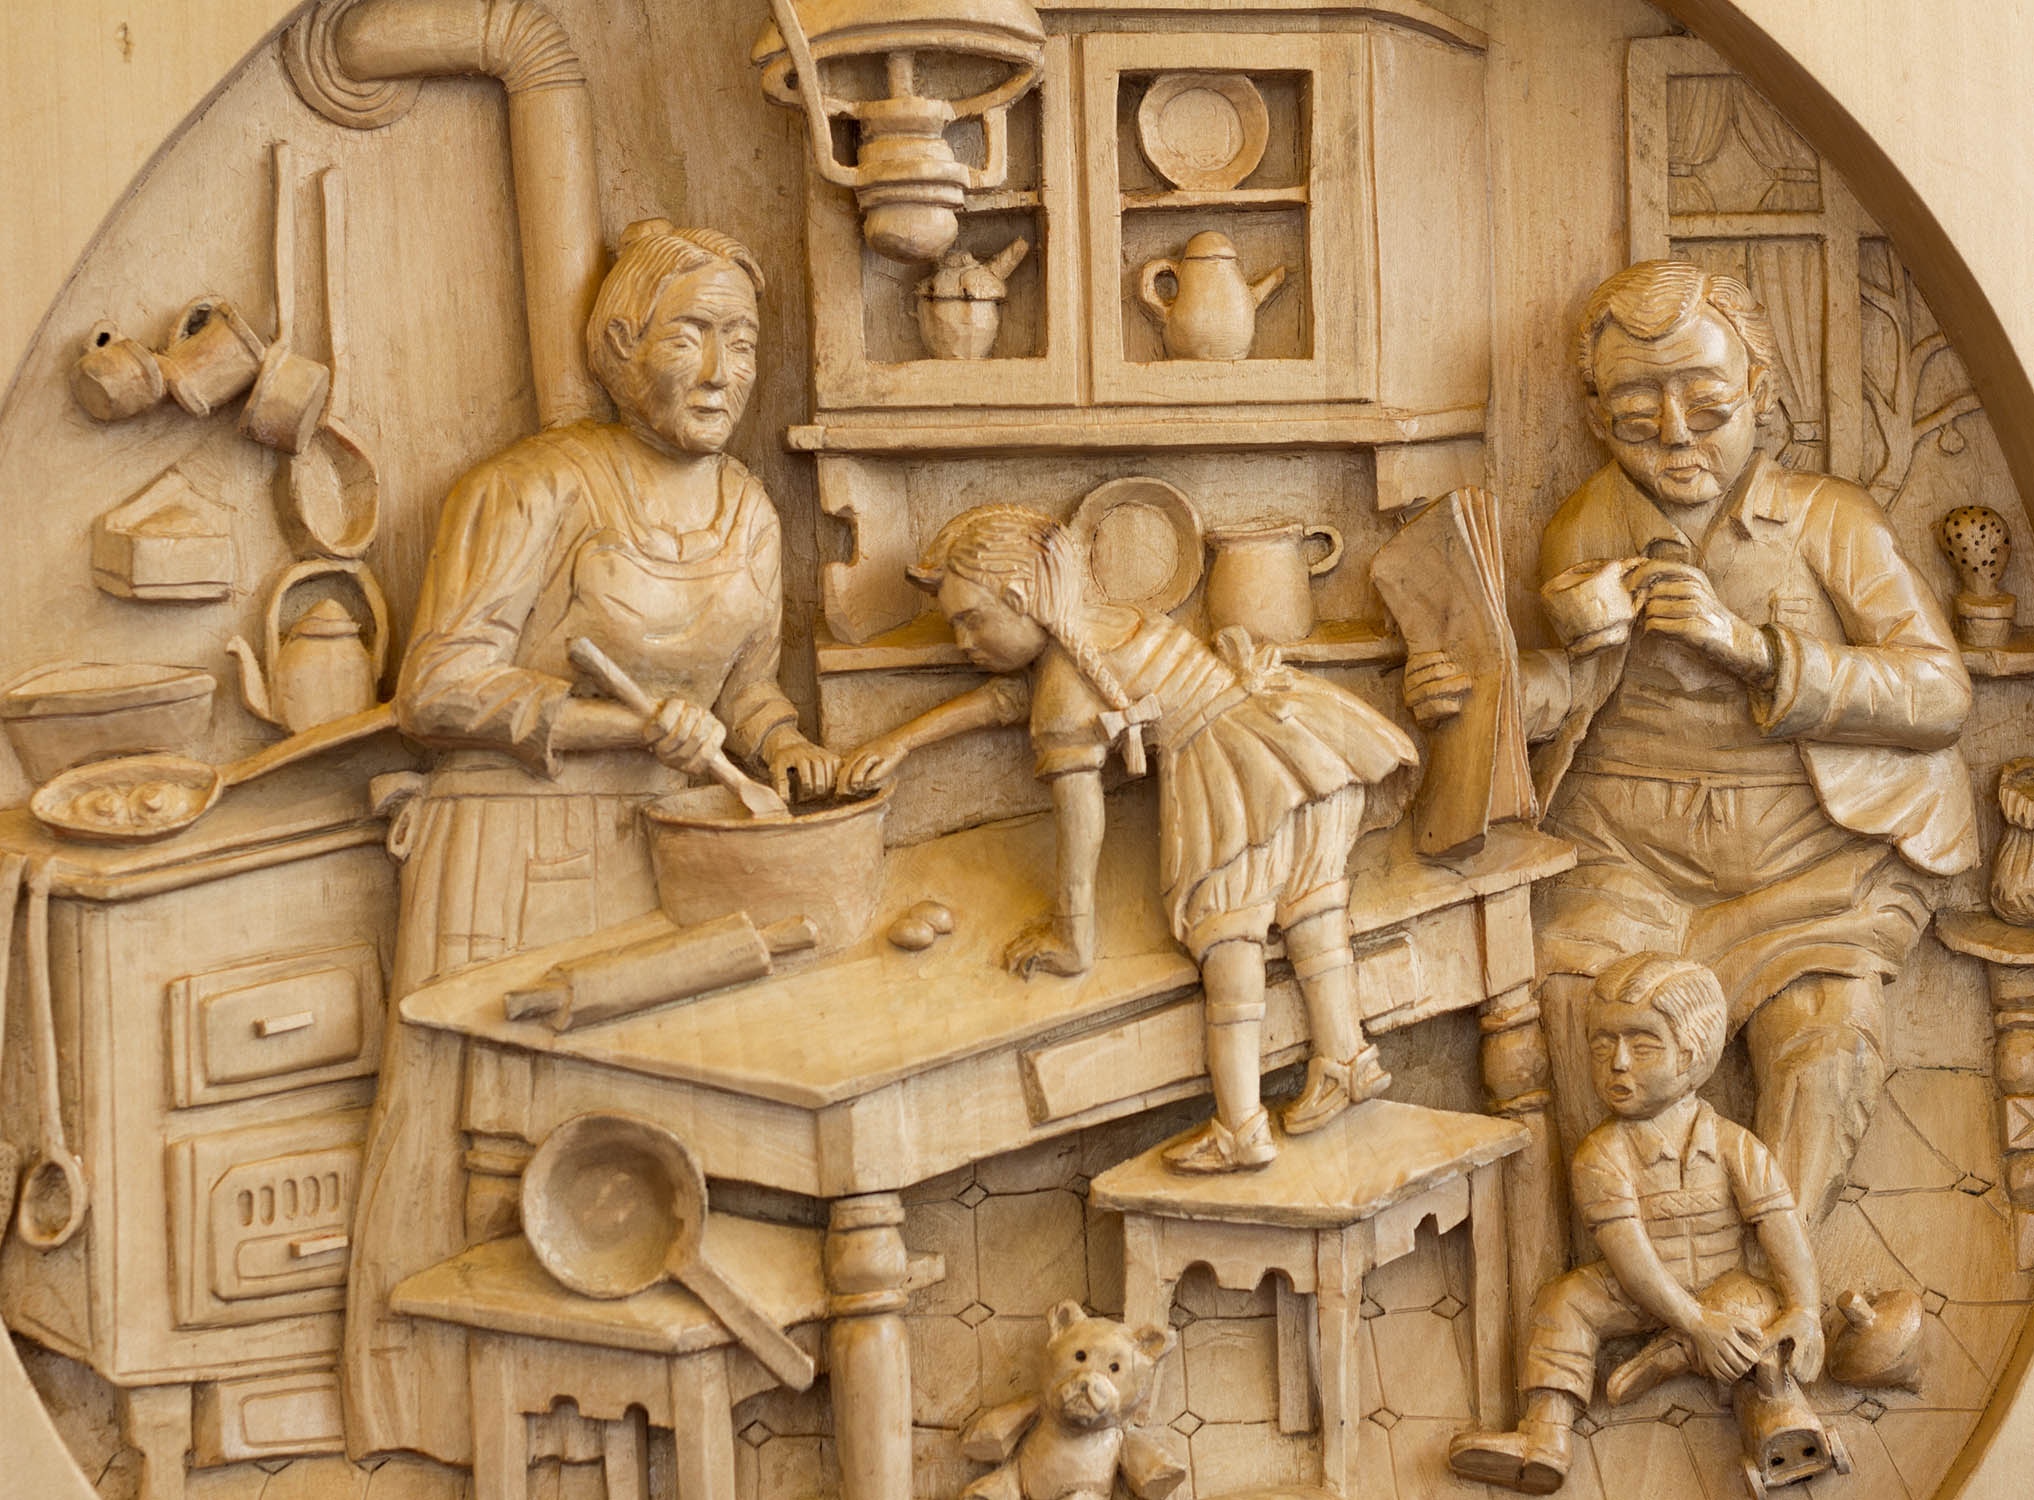 wood carving from aosta italy - Log Cabin Cooking